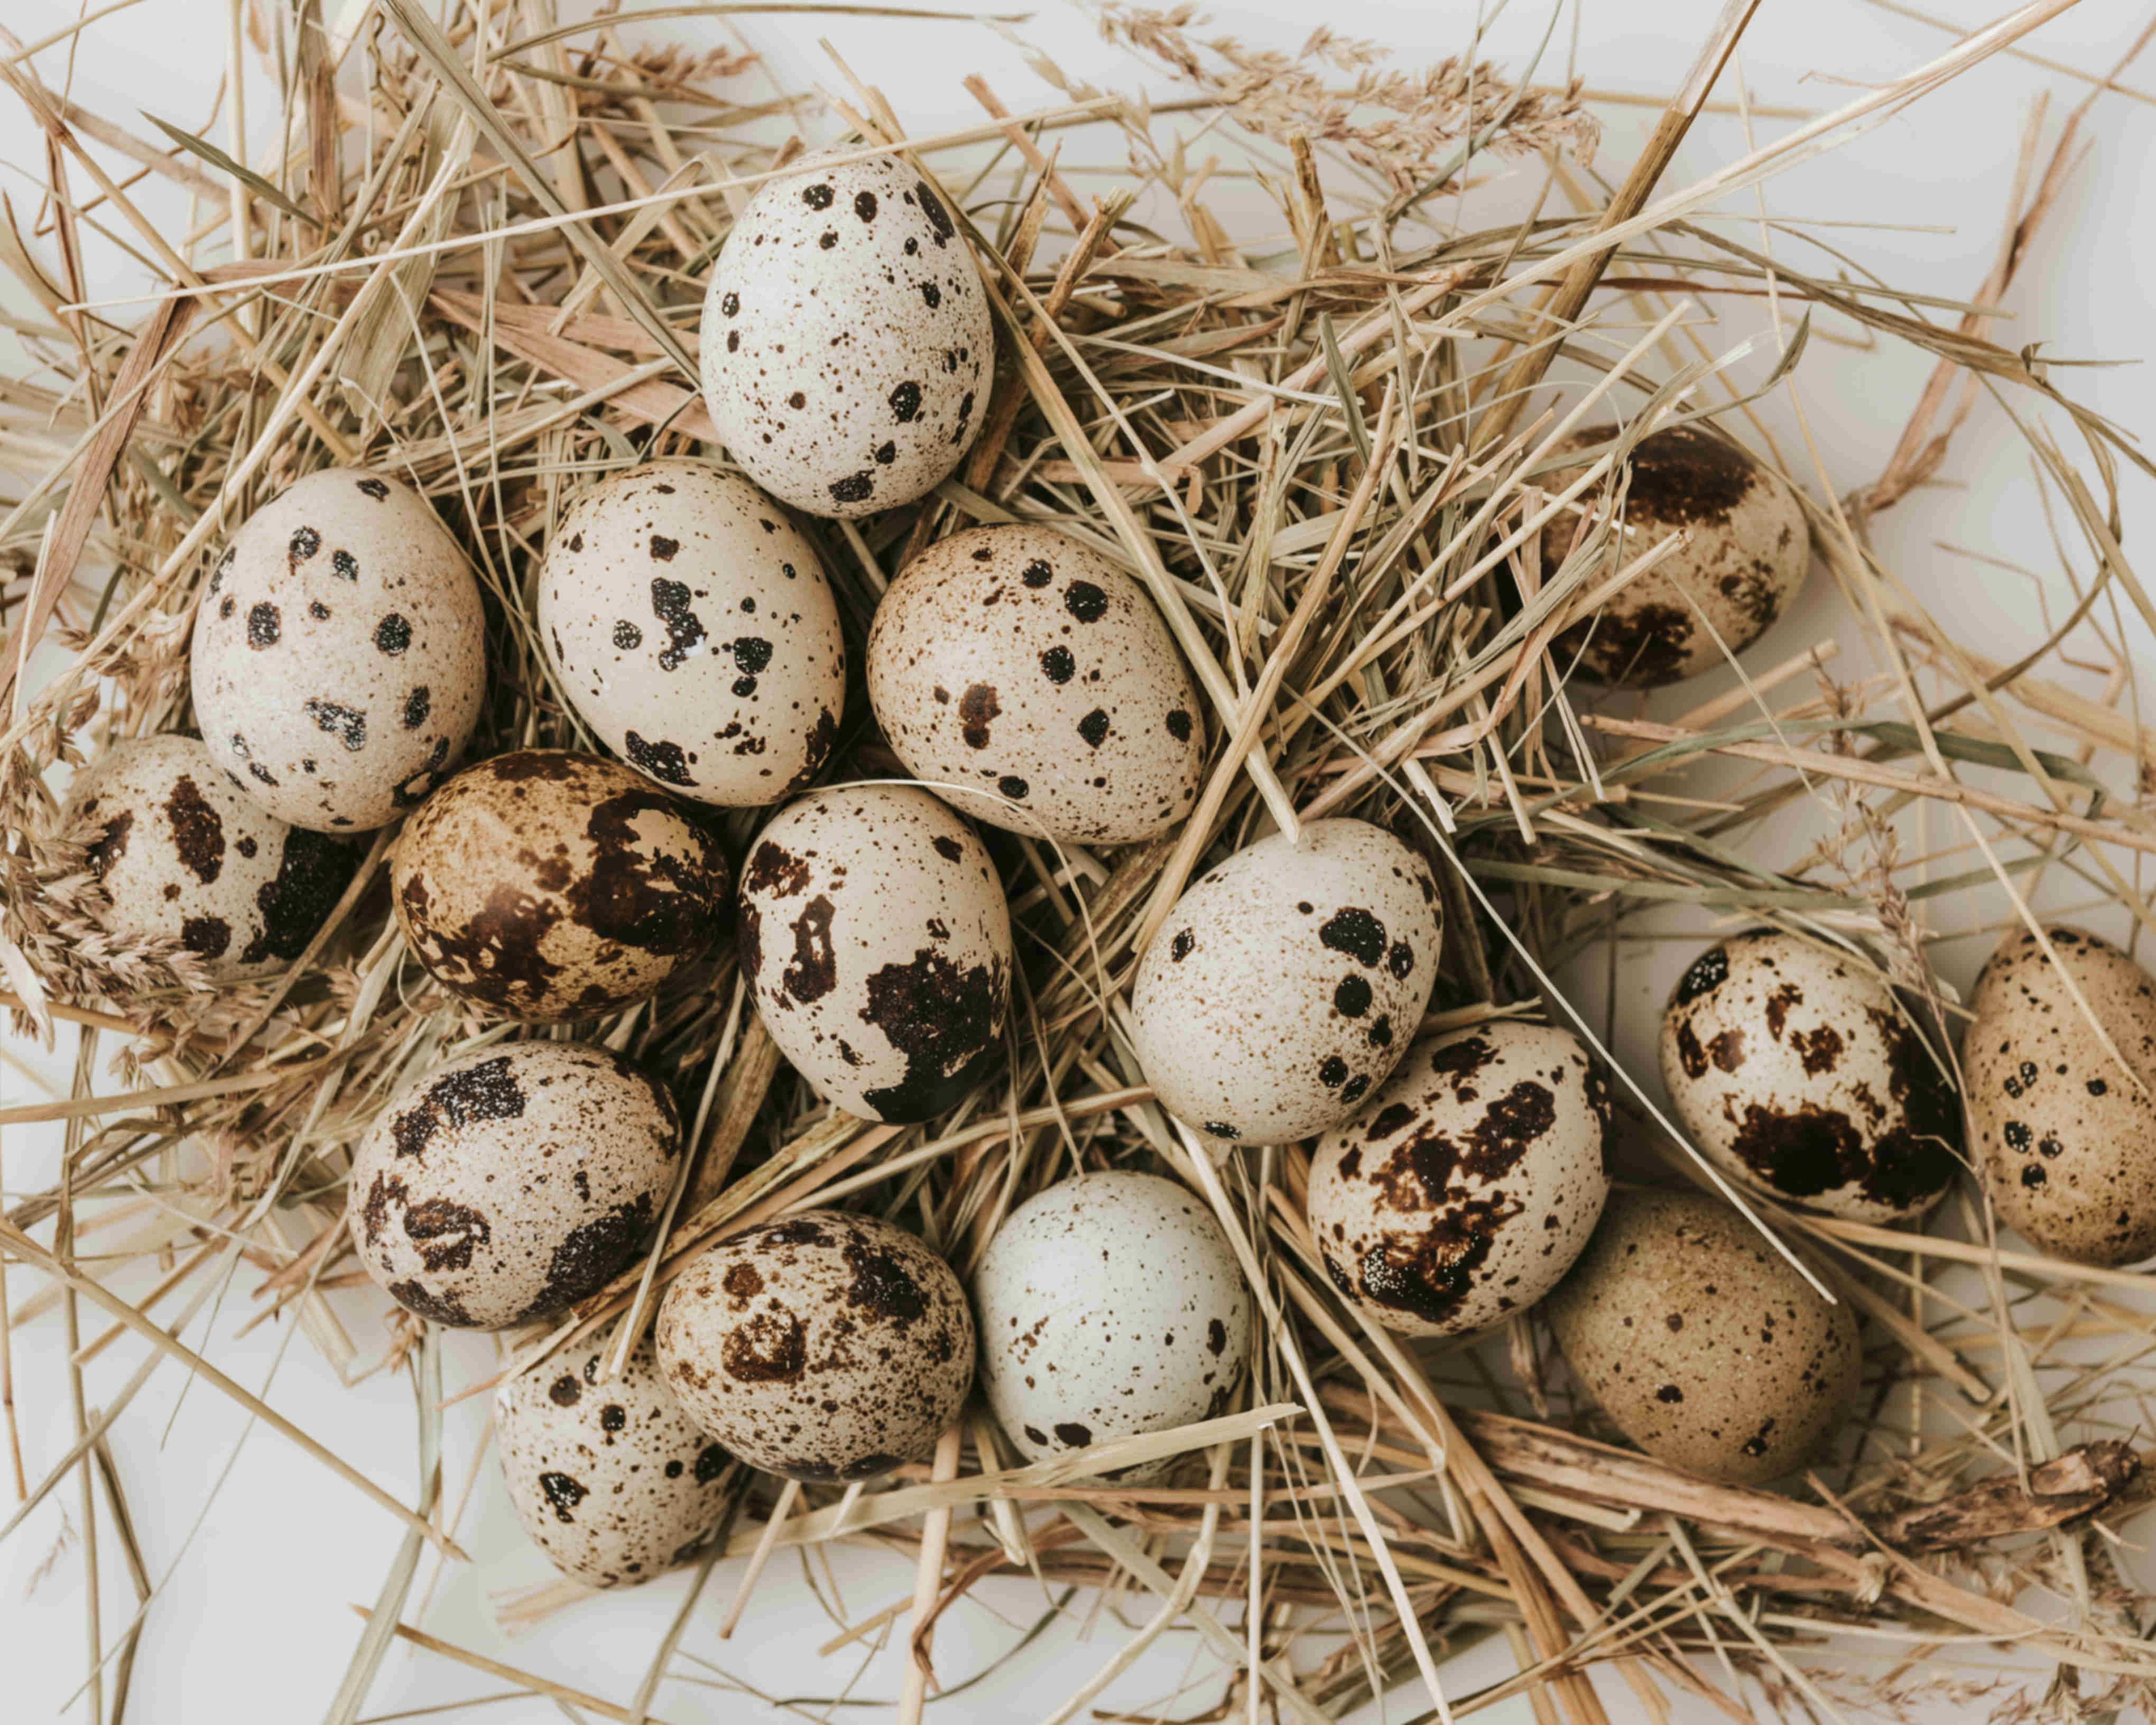 Quail eggs from James' flock